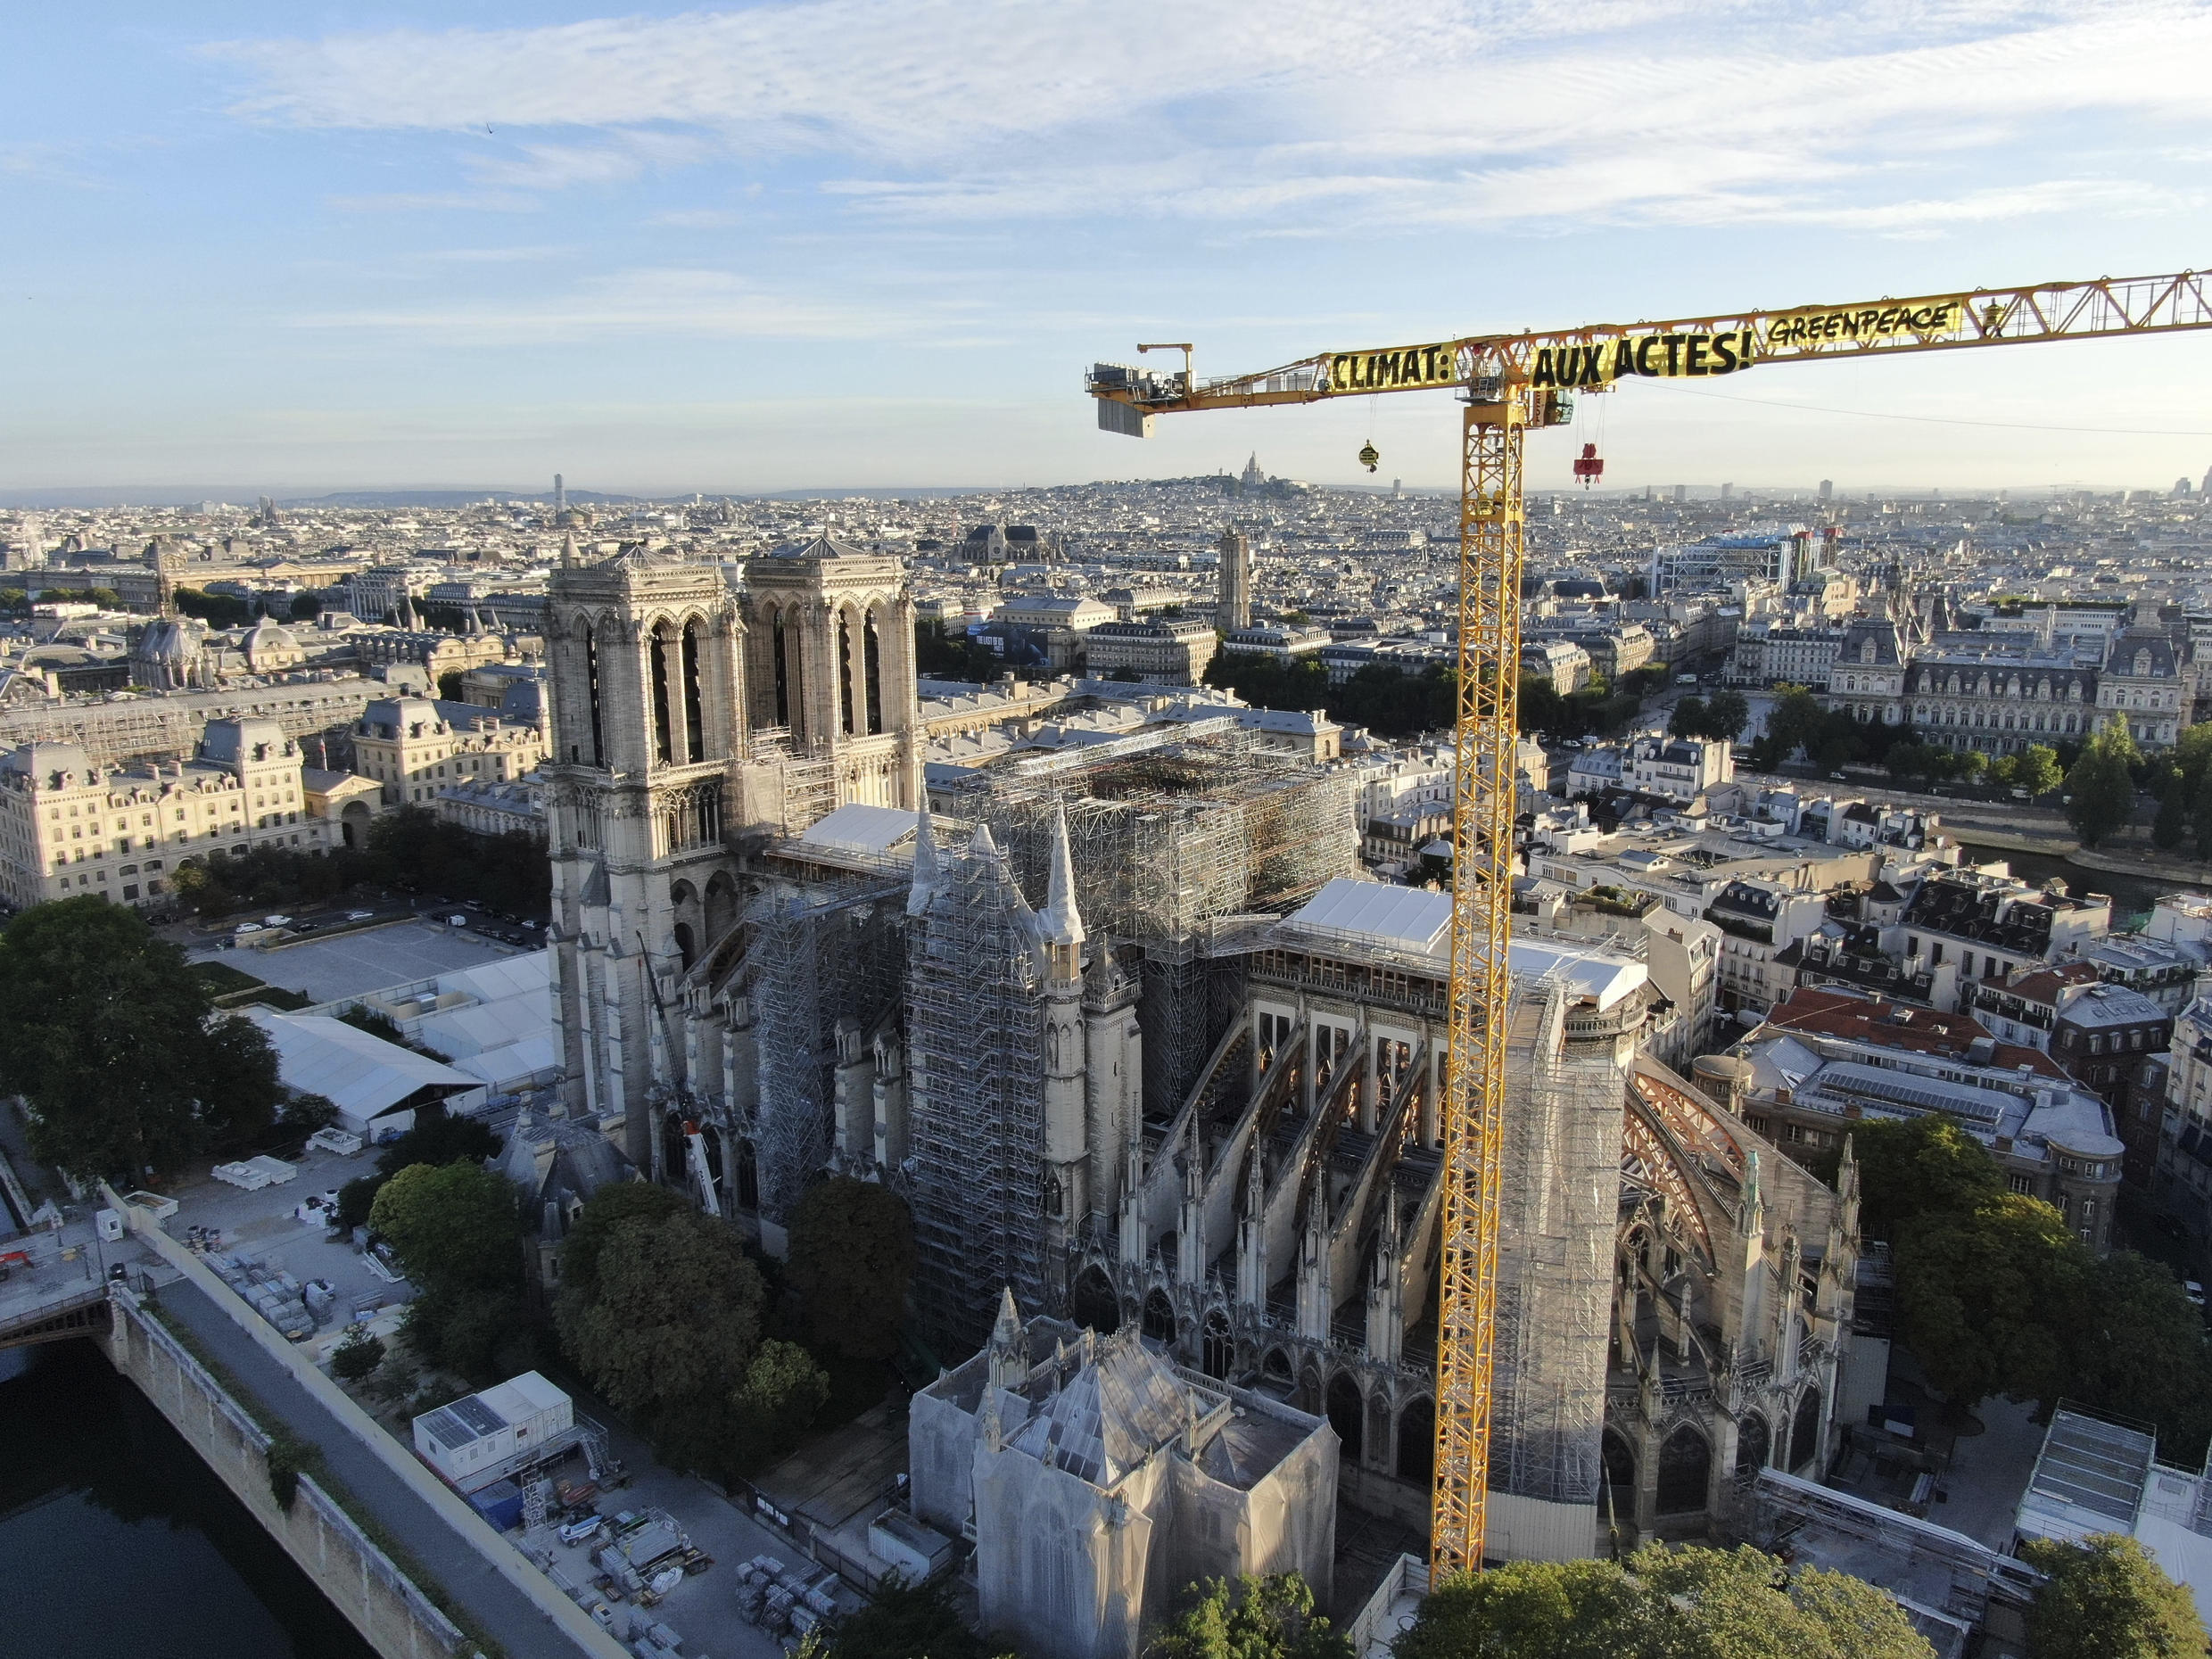 "In this photo provided by Greenpeace, a banner attached to a crane reads: ""Climate. In action"", near Notre Dame Cathedral, in Paris, Thursday, July 9, 2020. Greenpeace activists hung banners from the huge construction crane atop Notre Dame Cathedral in Paris on Thursday accusing France and President Emmanuel Macron of not doing enough to fight climate change. (Greenpeace via AP)"